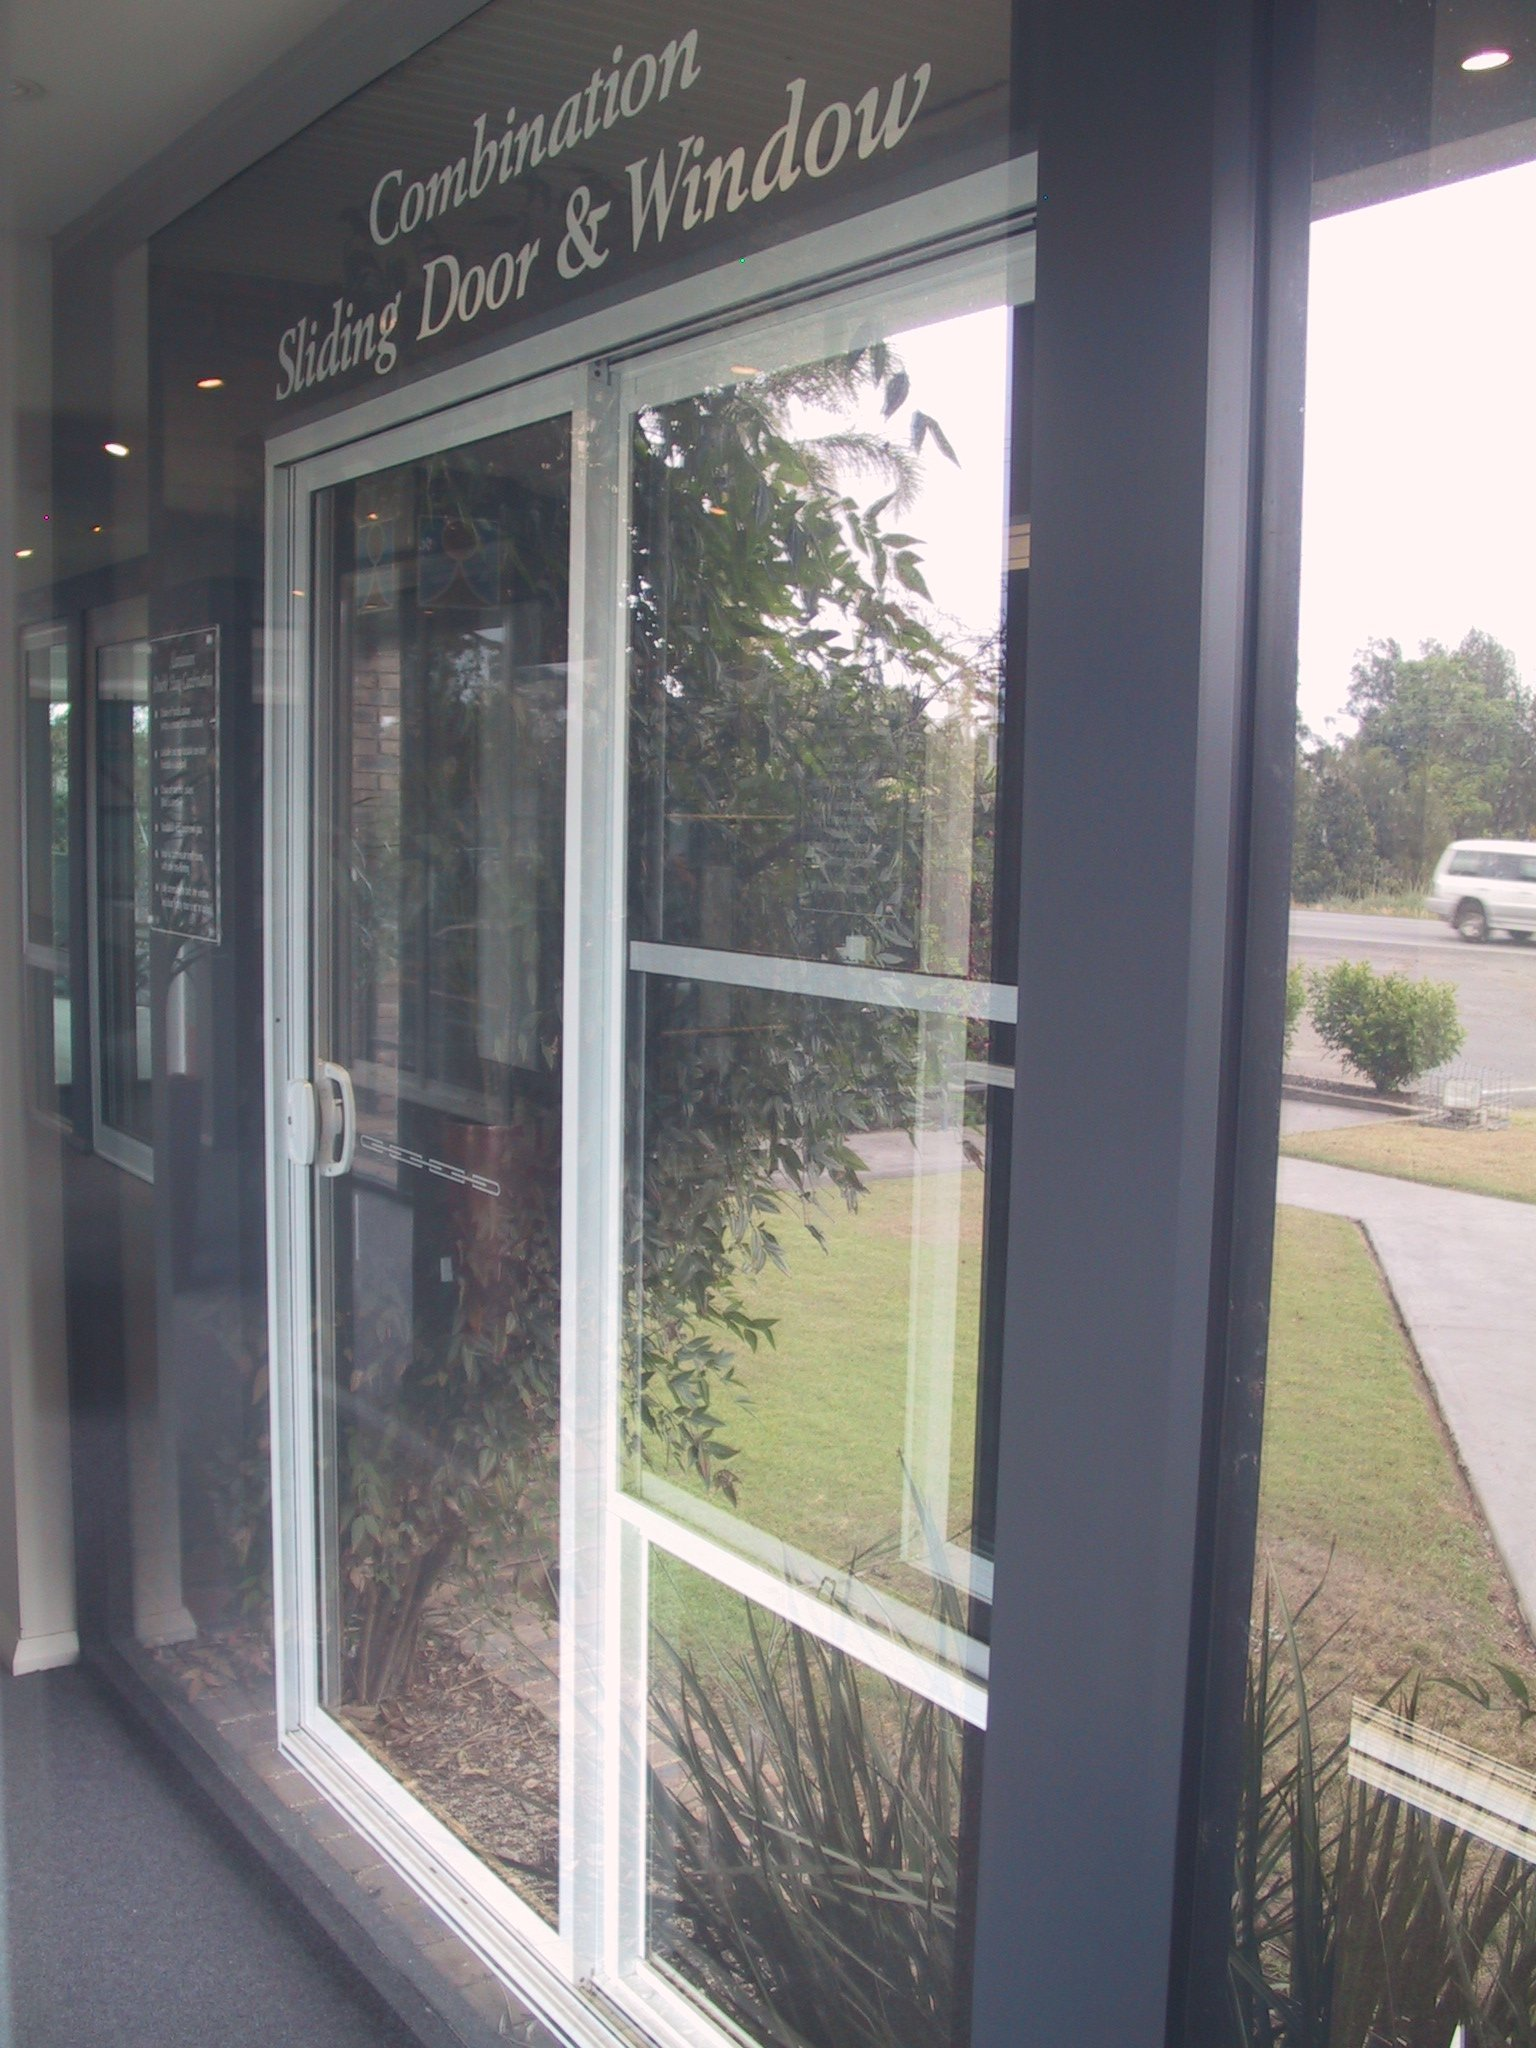 Aluminum Combination Sliding Door and Windiow 01 & Aluminum Combination Sliding Door and Windiow 01 - Townsville ...